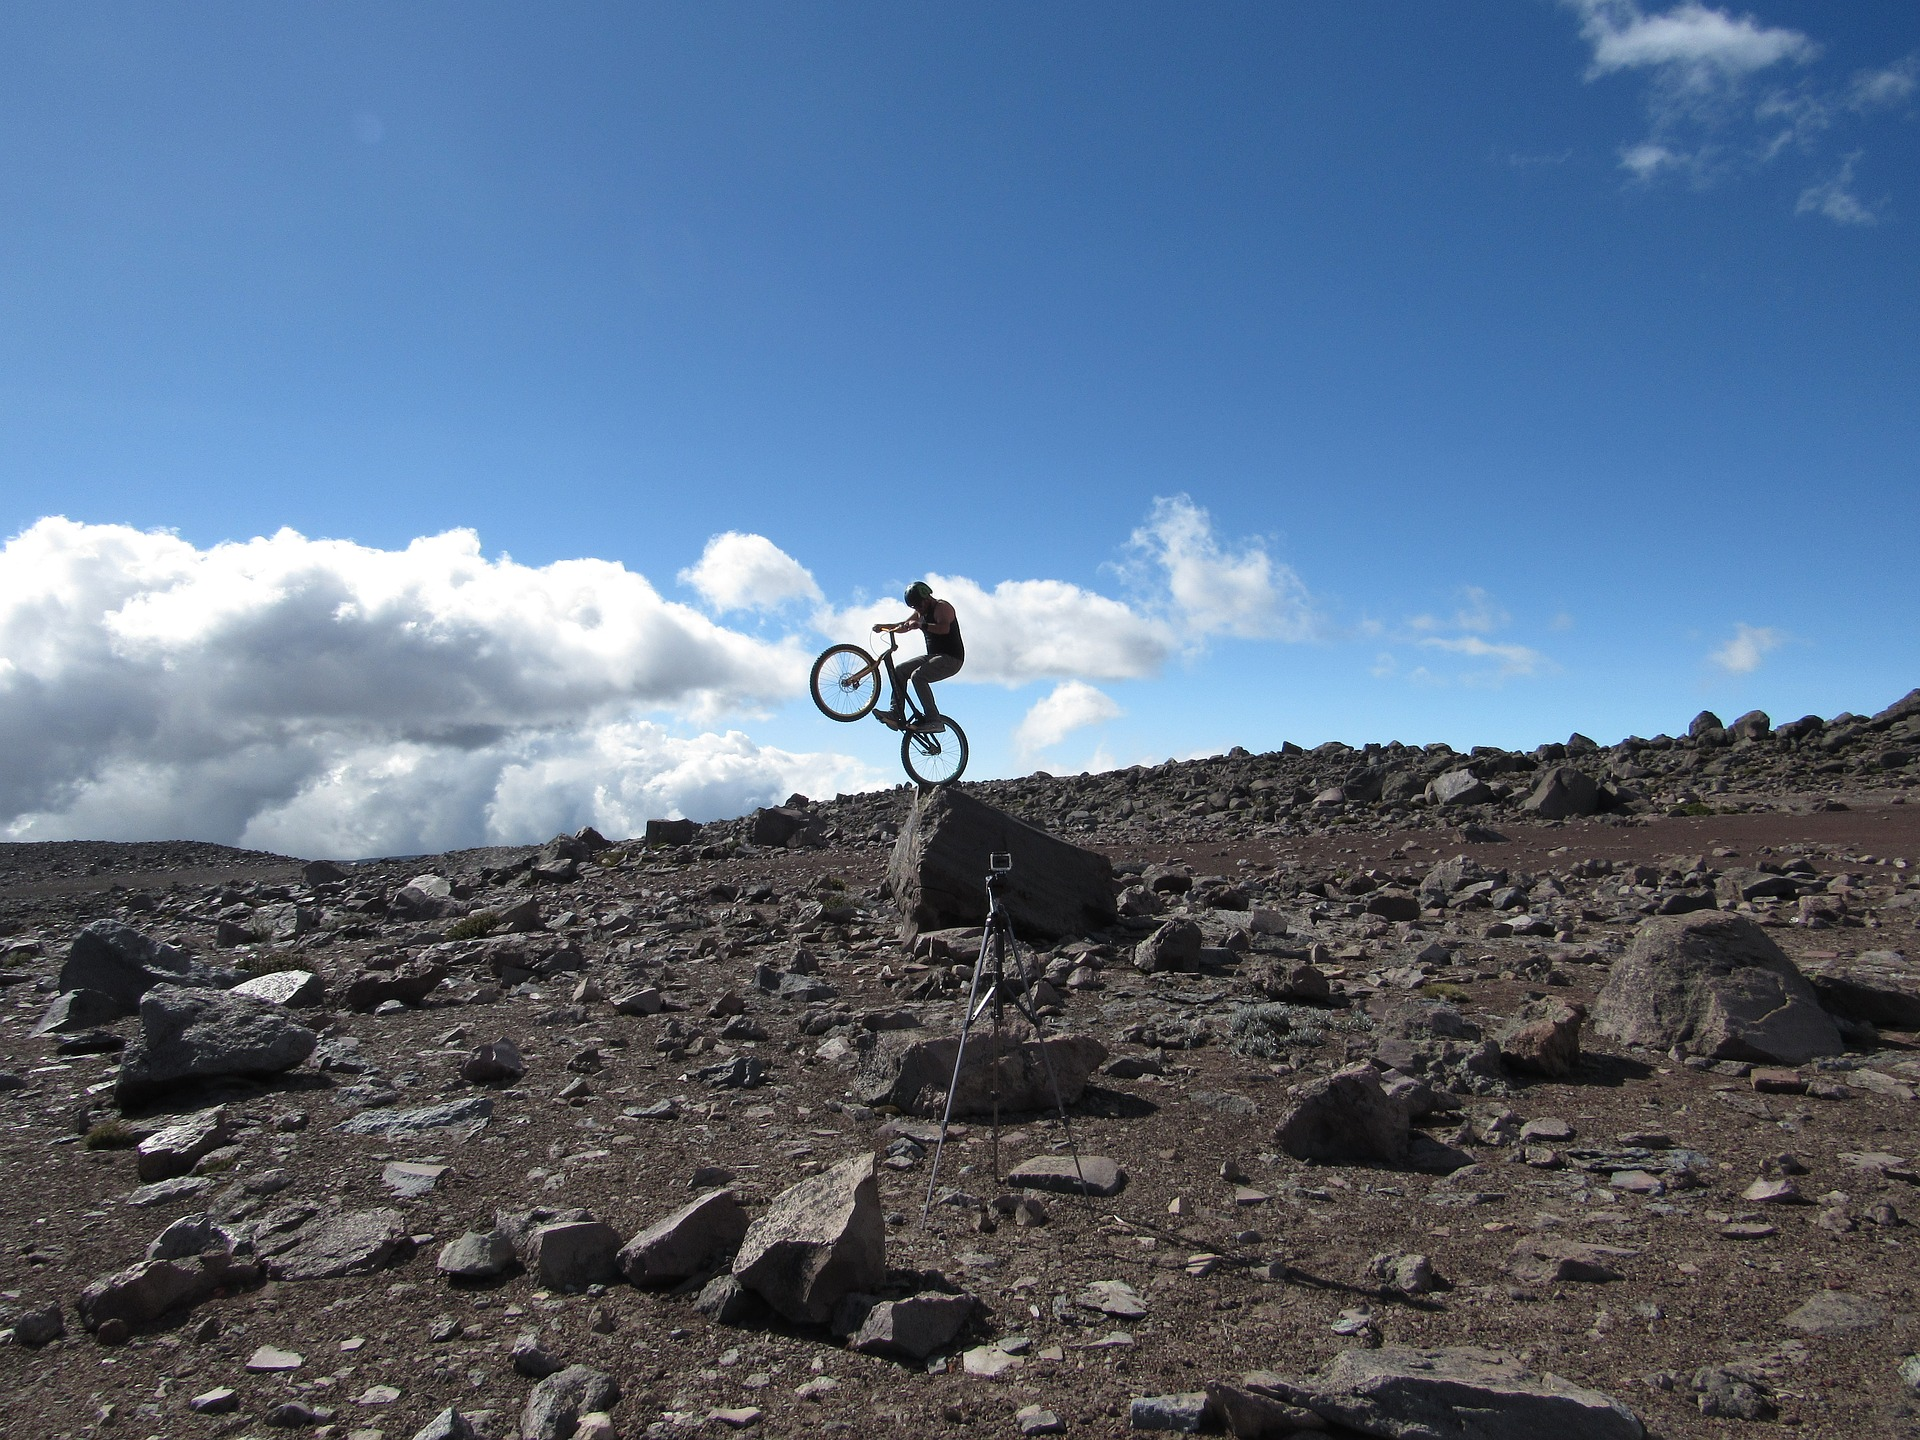 Riding a bicycle and doing tricks on a rocky landscape.